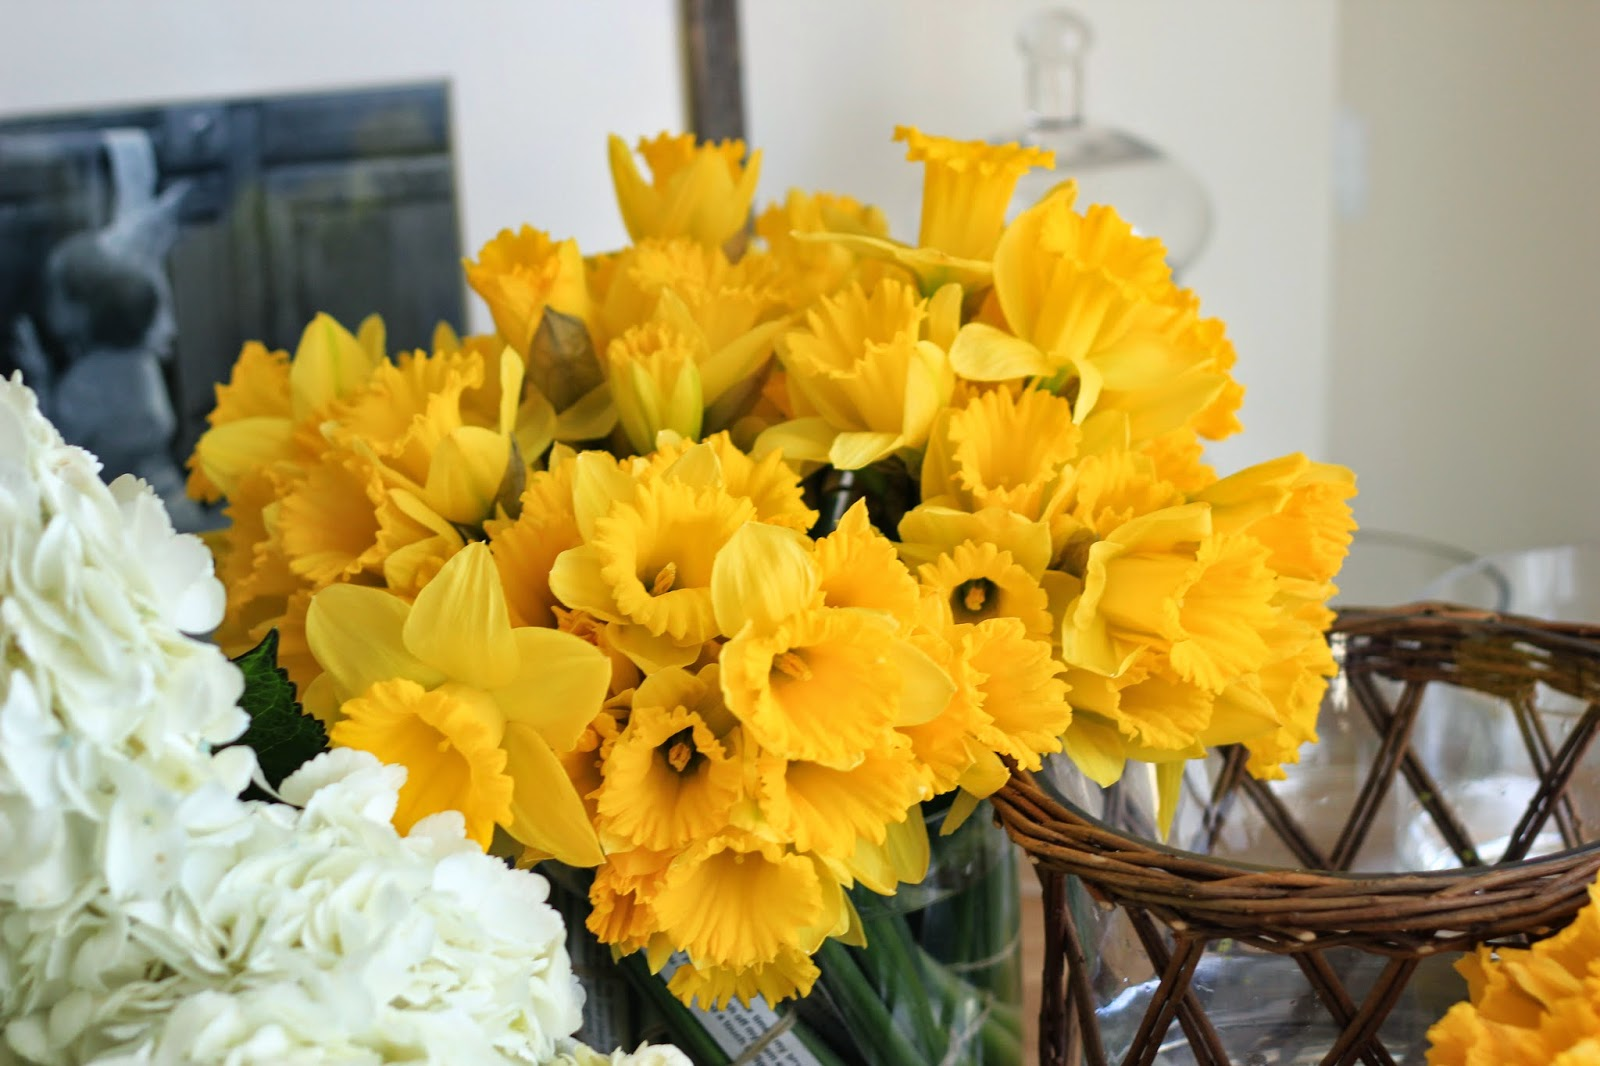 Jenny steffens hobick surprise birthday party for joy spring mike and emma when to the flower market in the morning with me and we bought everything that was yellow white springy and smelled good izmirmasajfo